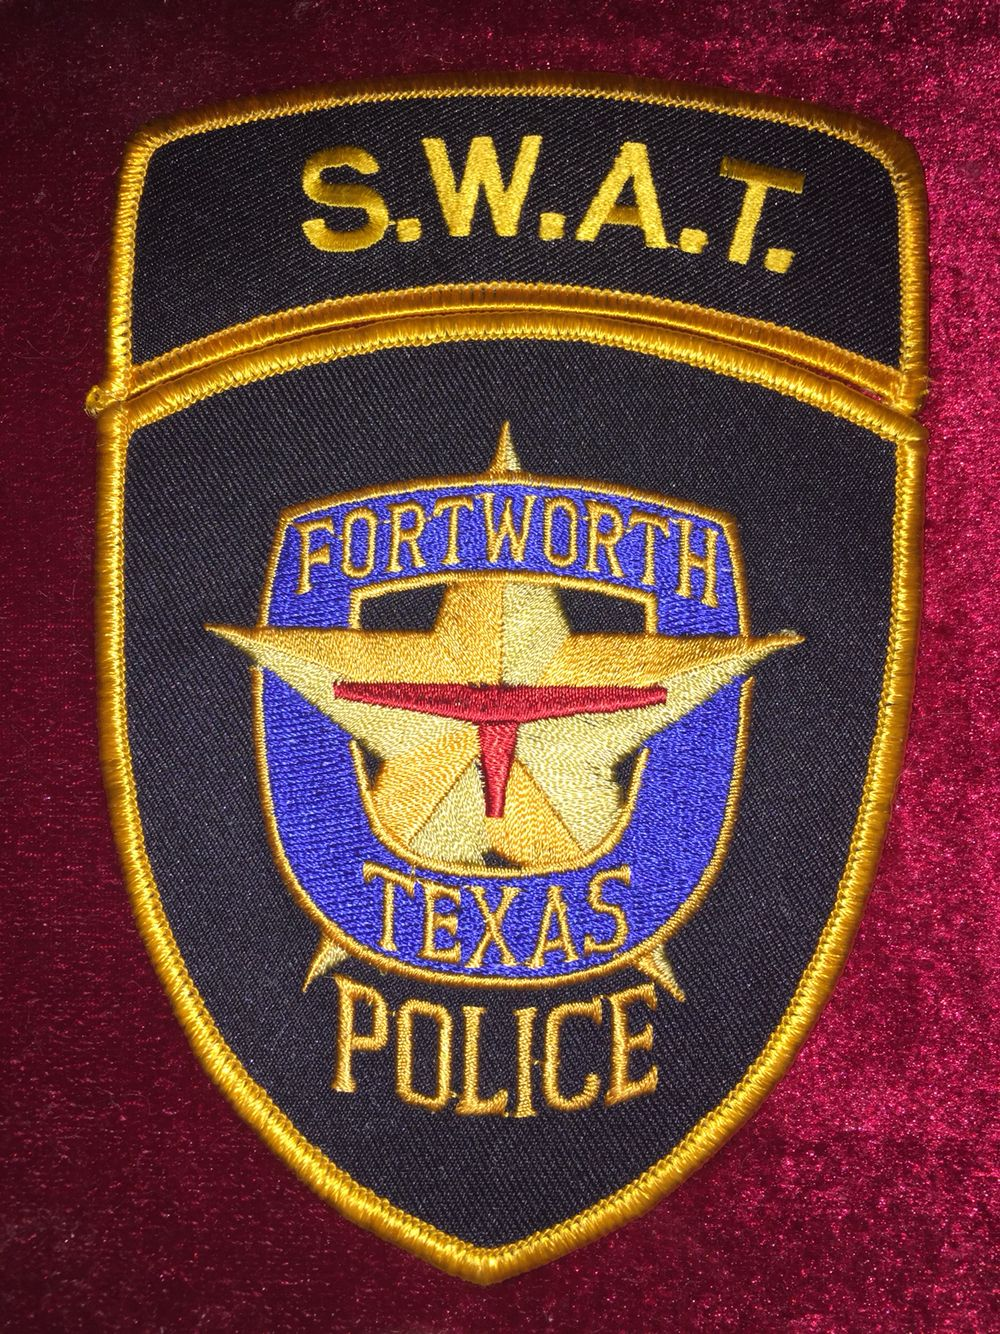 How To Get A Police Report In Fort Worth